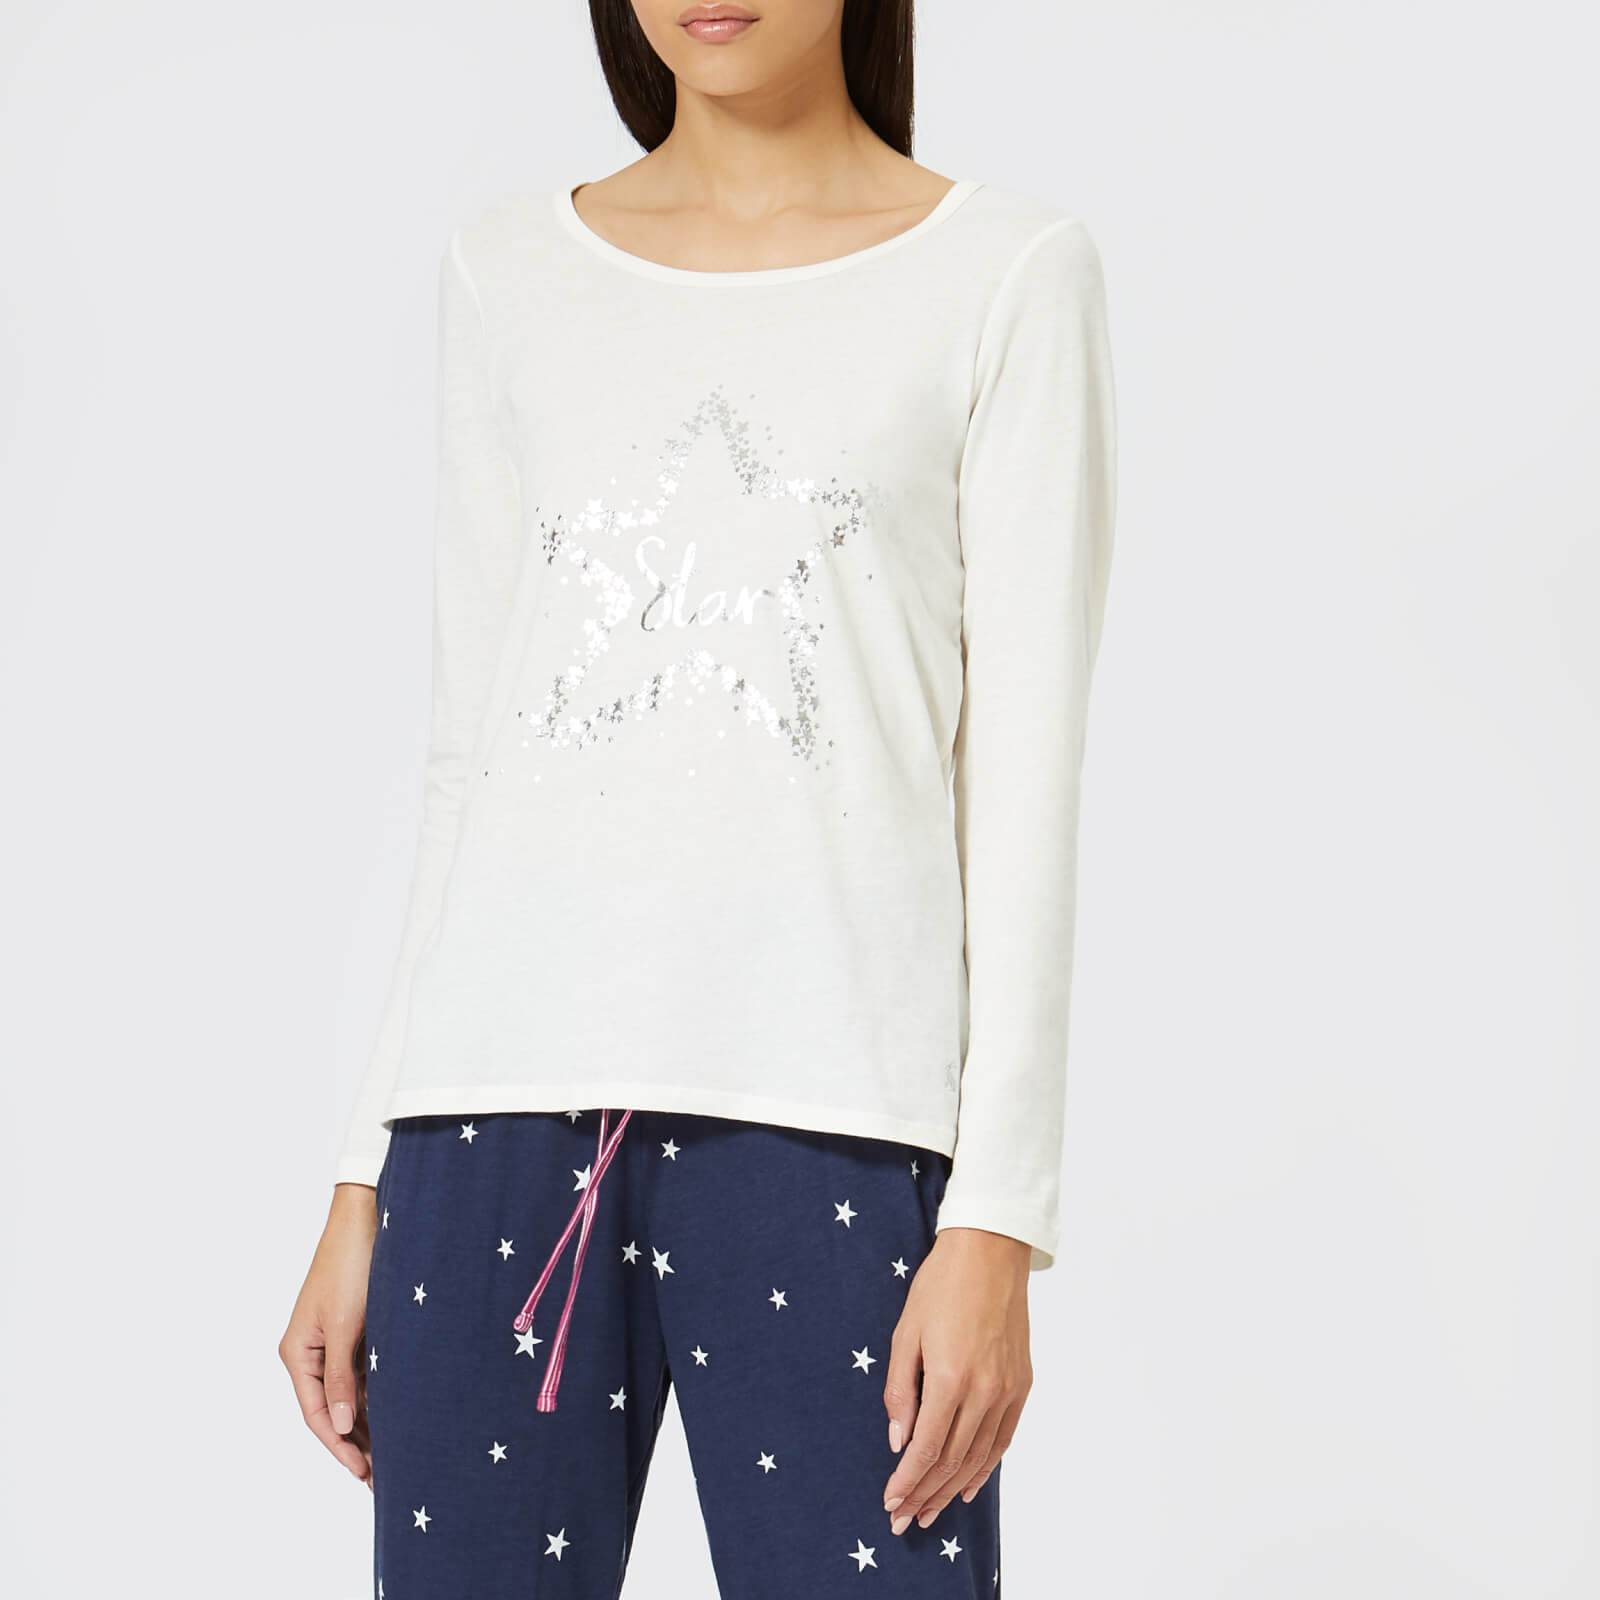 Joules Women's Aubree Long Sleeved Graphic Top - Cream - UK 14 - Cream